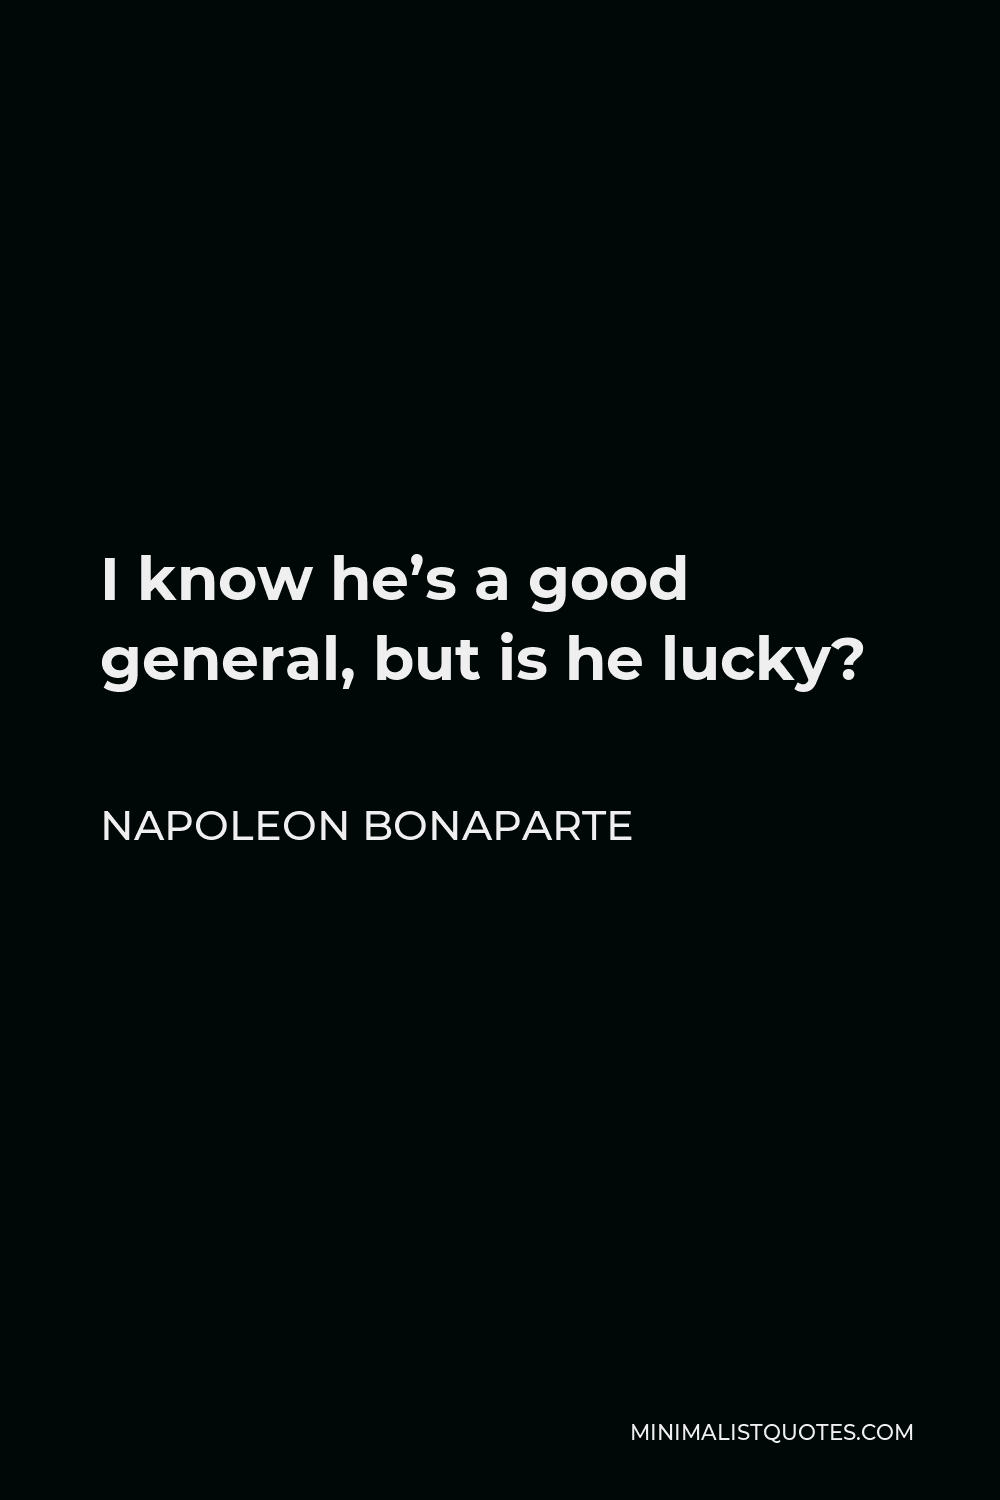 Napoleon Bonaparte Quote - I know he's a good general, but is he lucky?